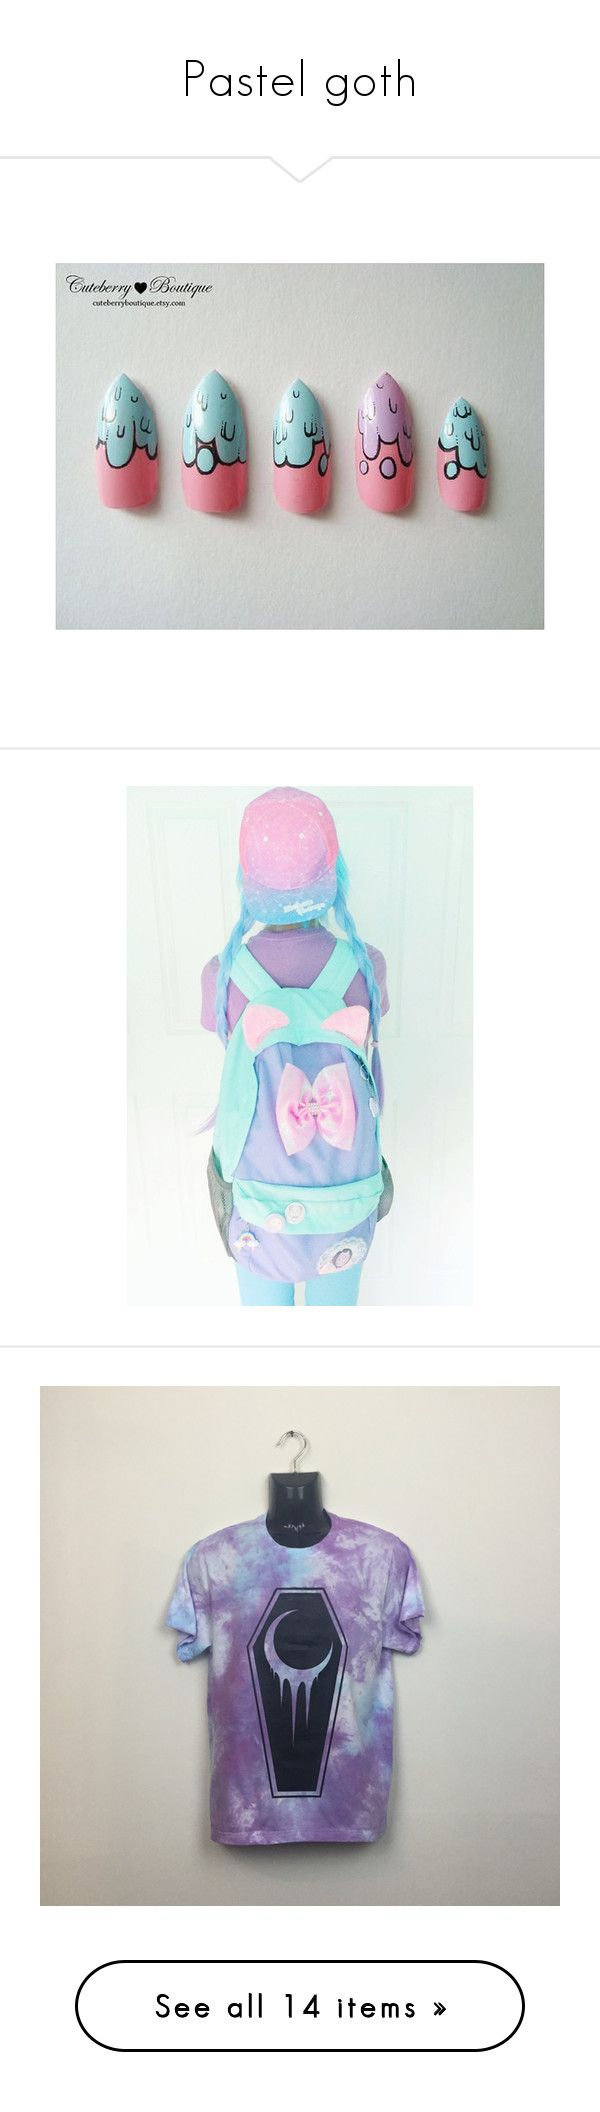 """""""Pastel goth"""" by gabikrocka ❤ liked on Polyvore featuring accessories, jumpsuits, rompers, skirts, bottoms, dresses, overalls, pink bib overalls, pink rompers and bib overalls"""